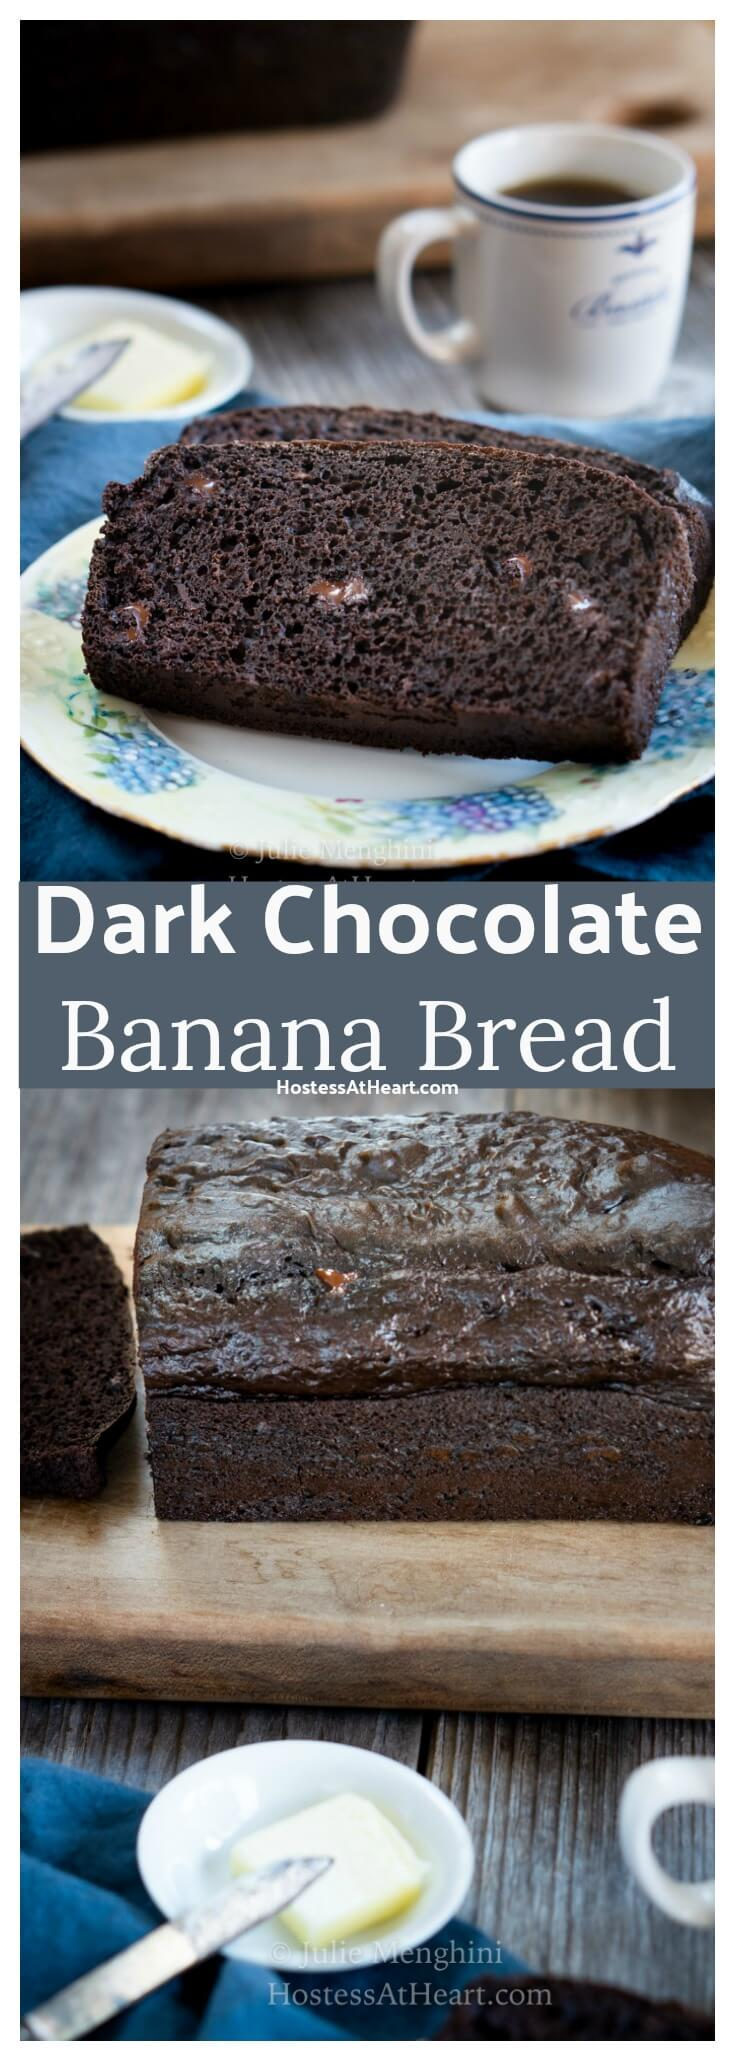 This Decadent Dark Chocolate Banana Bread is perfect for breakfast with a cup of coffee or it makes the perfect accompanimentto a cup of soup for dinner. #bread, #breadrecipes, #homemadebread #baking #chocolate #bananabread